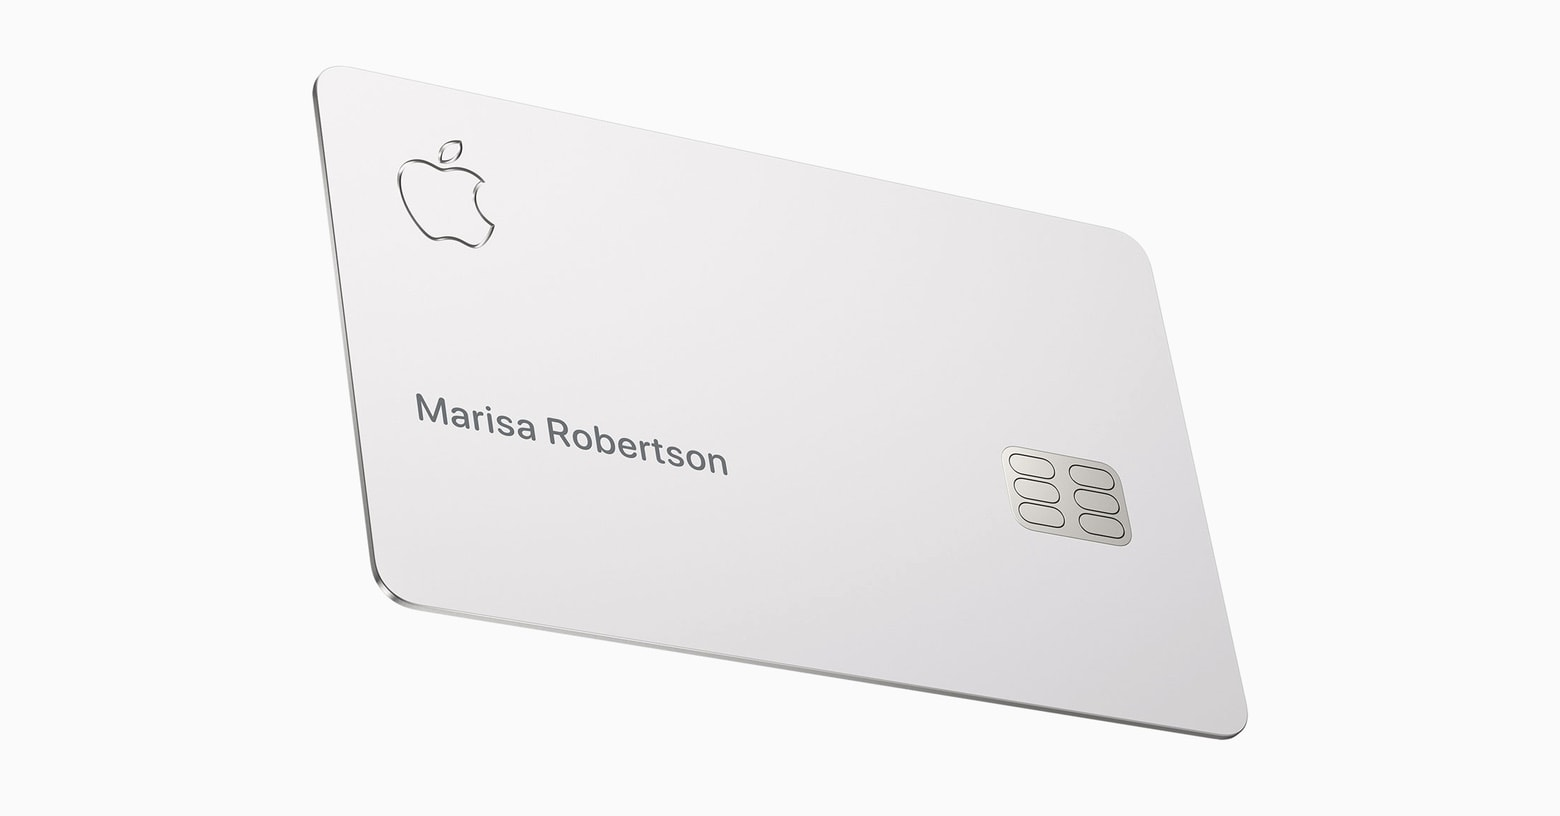 Apple Card's 'elite card' status is hitting retailers in the wallet